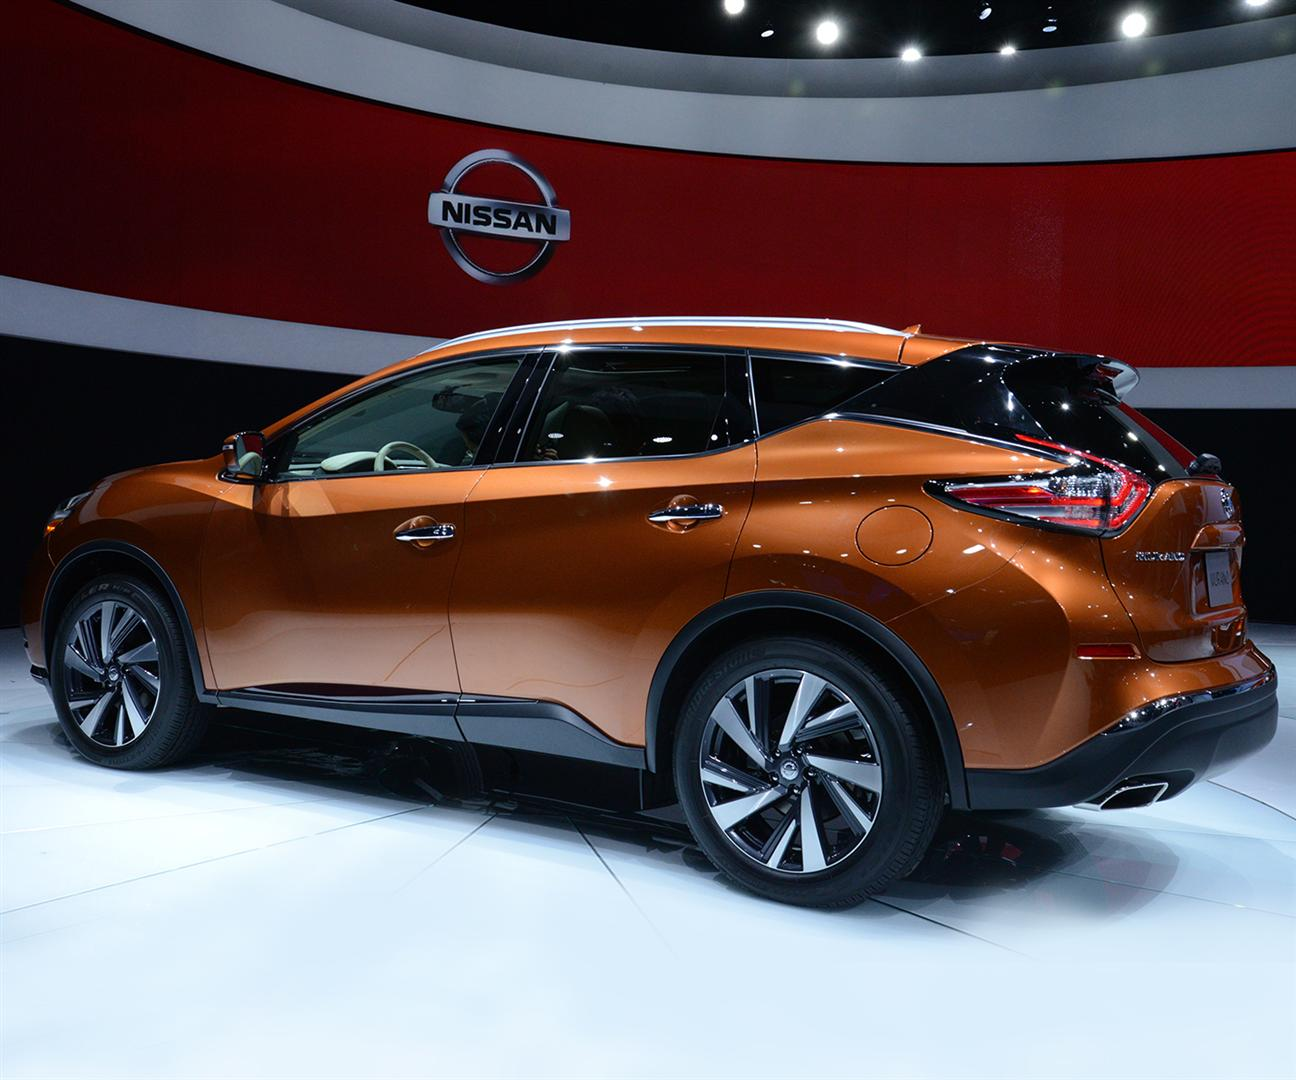 2018 Nissan Murano Reviews and Rating